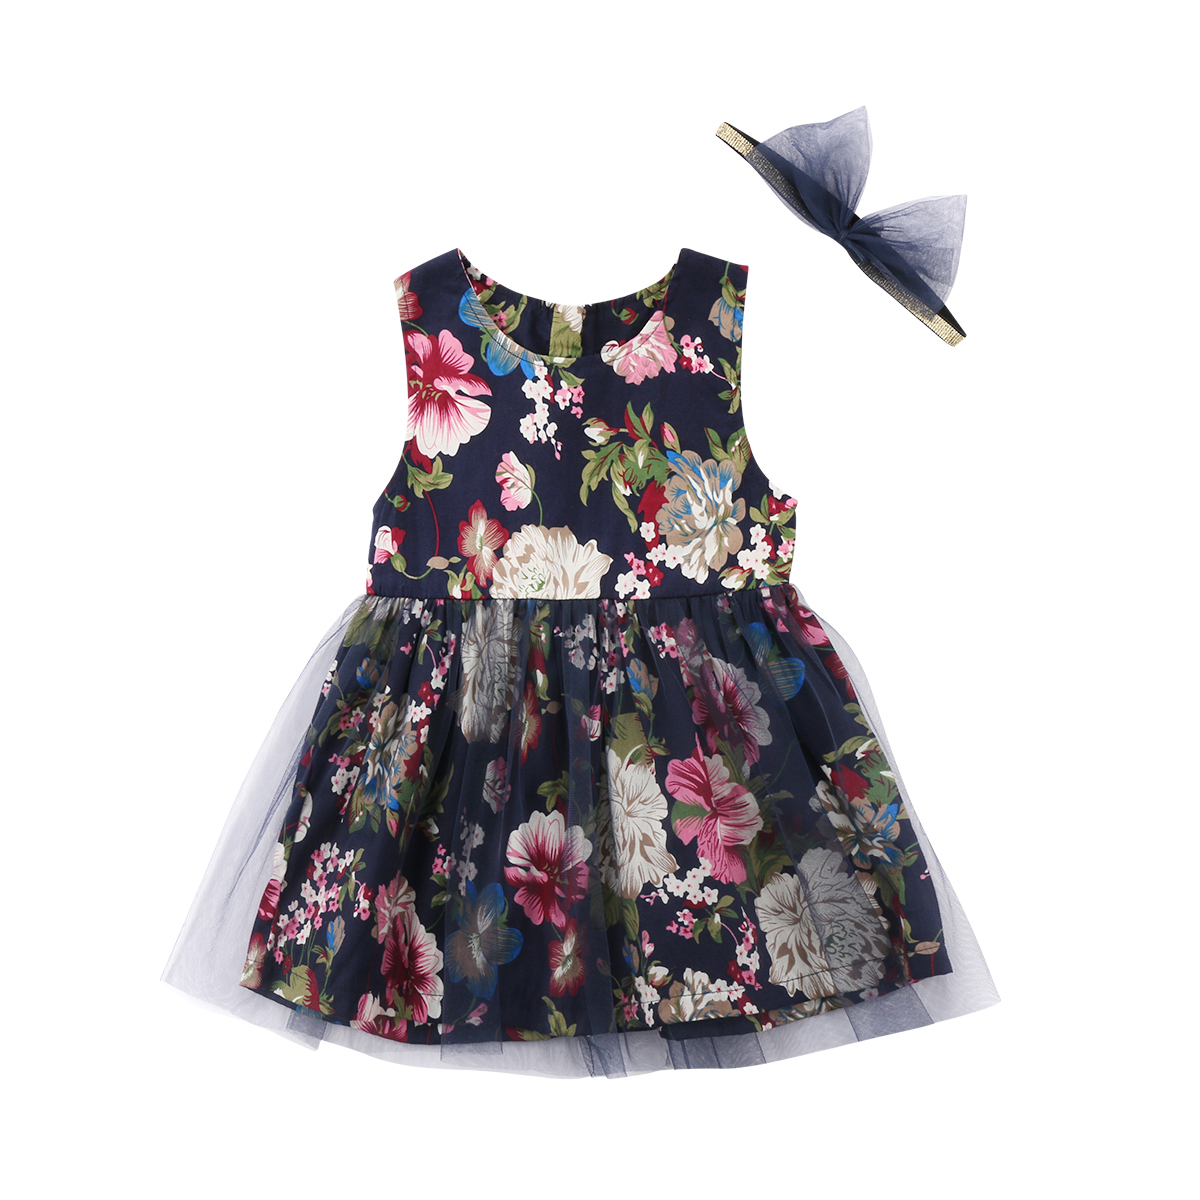 Sleeveless Toddler Baby Kids Girls Clothing Dresses Summer Floral Tulle Party Dress Sundress Clothes Girl 6M-4T princess lovely baby girls summer pure white dresses toddler clothing flutter sleeve dress for girl kids lace clothes sundress